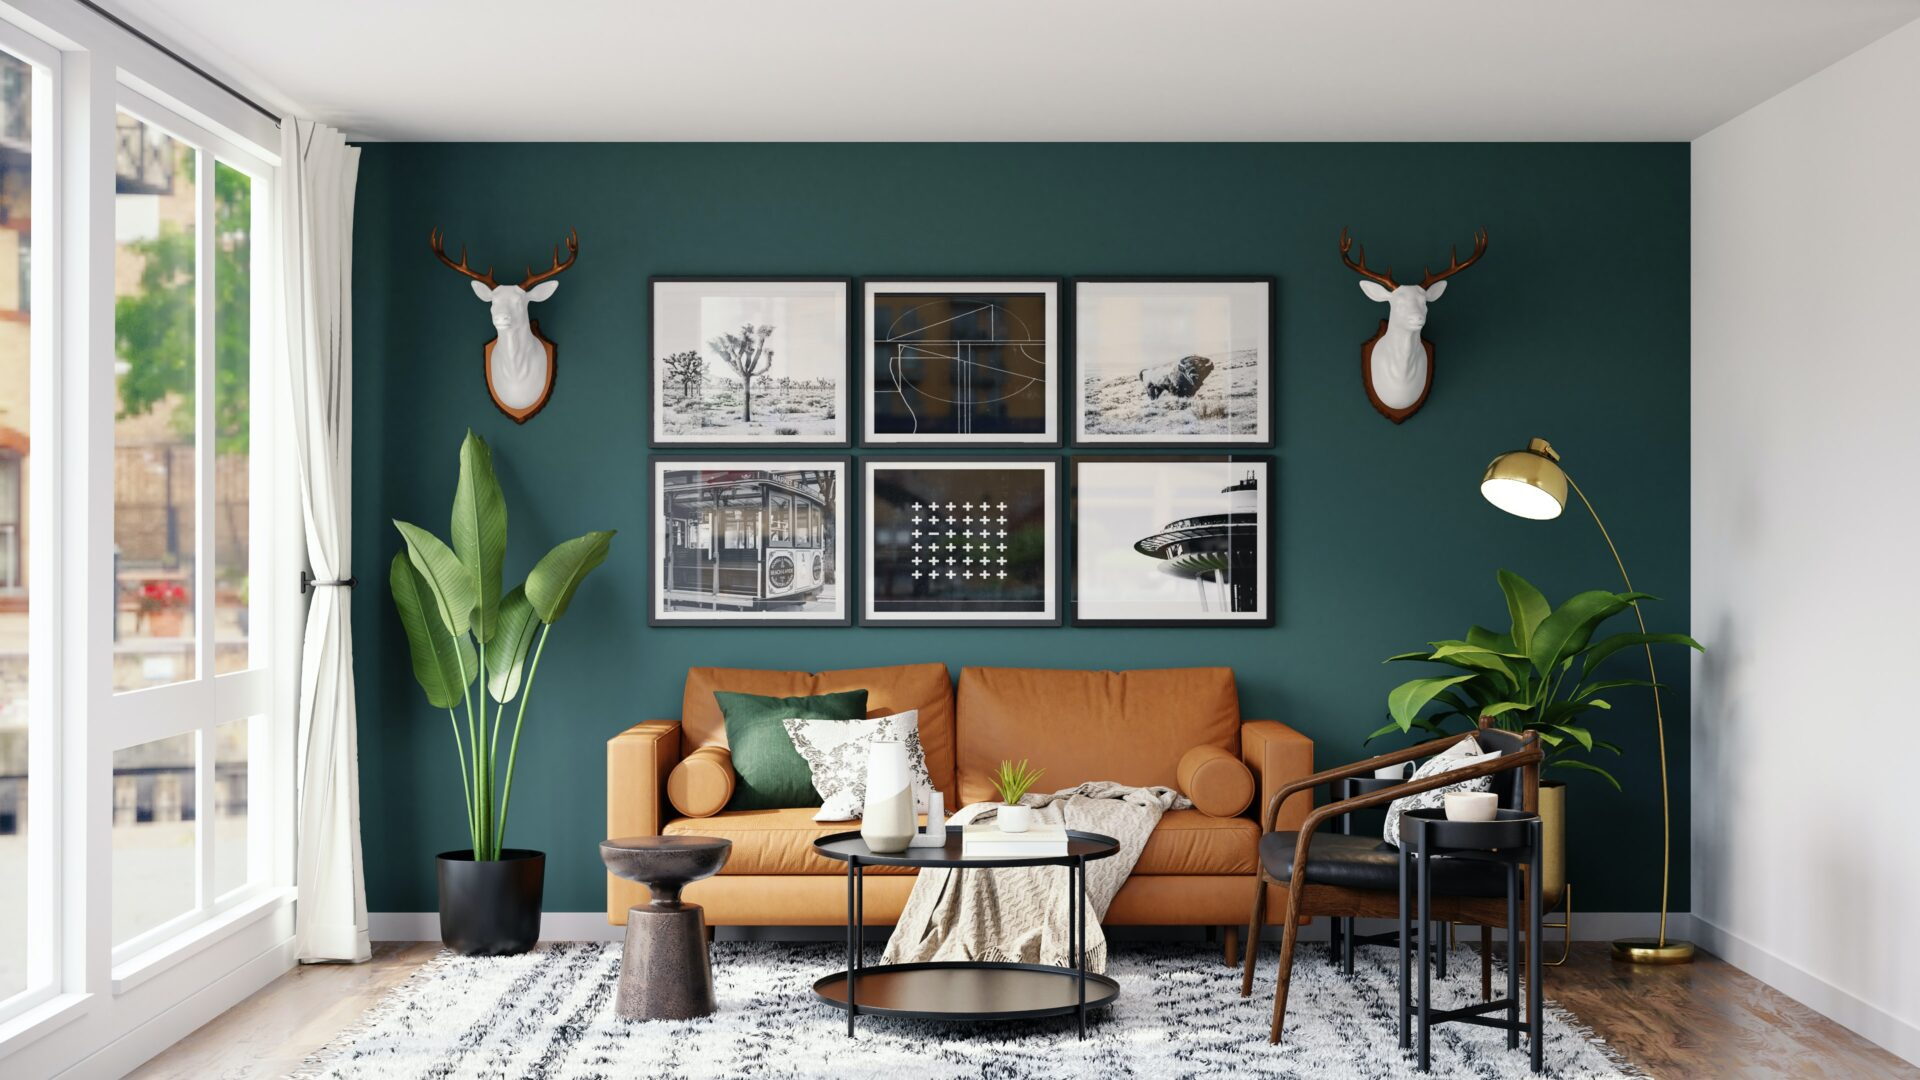 Colour Schemes in the Home - Choosing Wall Paint and more